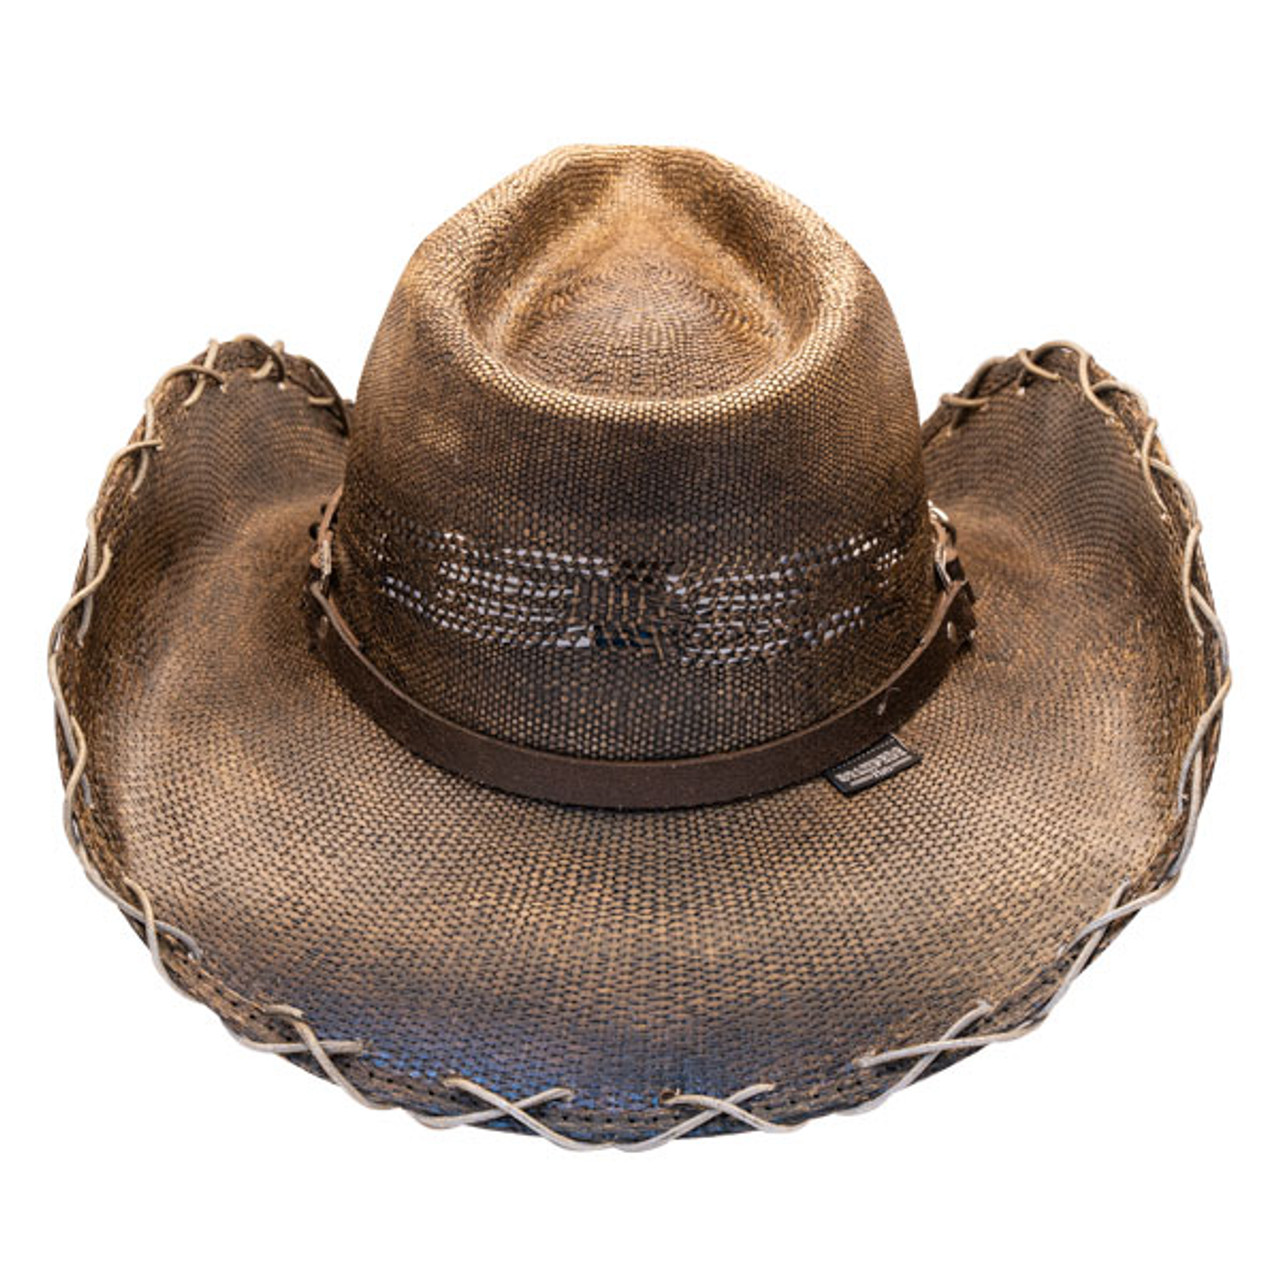 Stampede Hats - Black Stained Cowboy Hat w/ Chain Hat Band